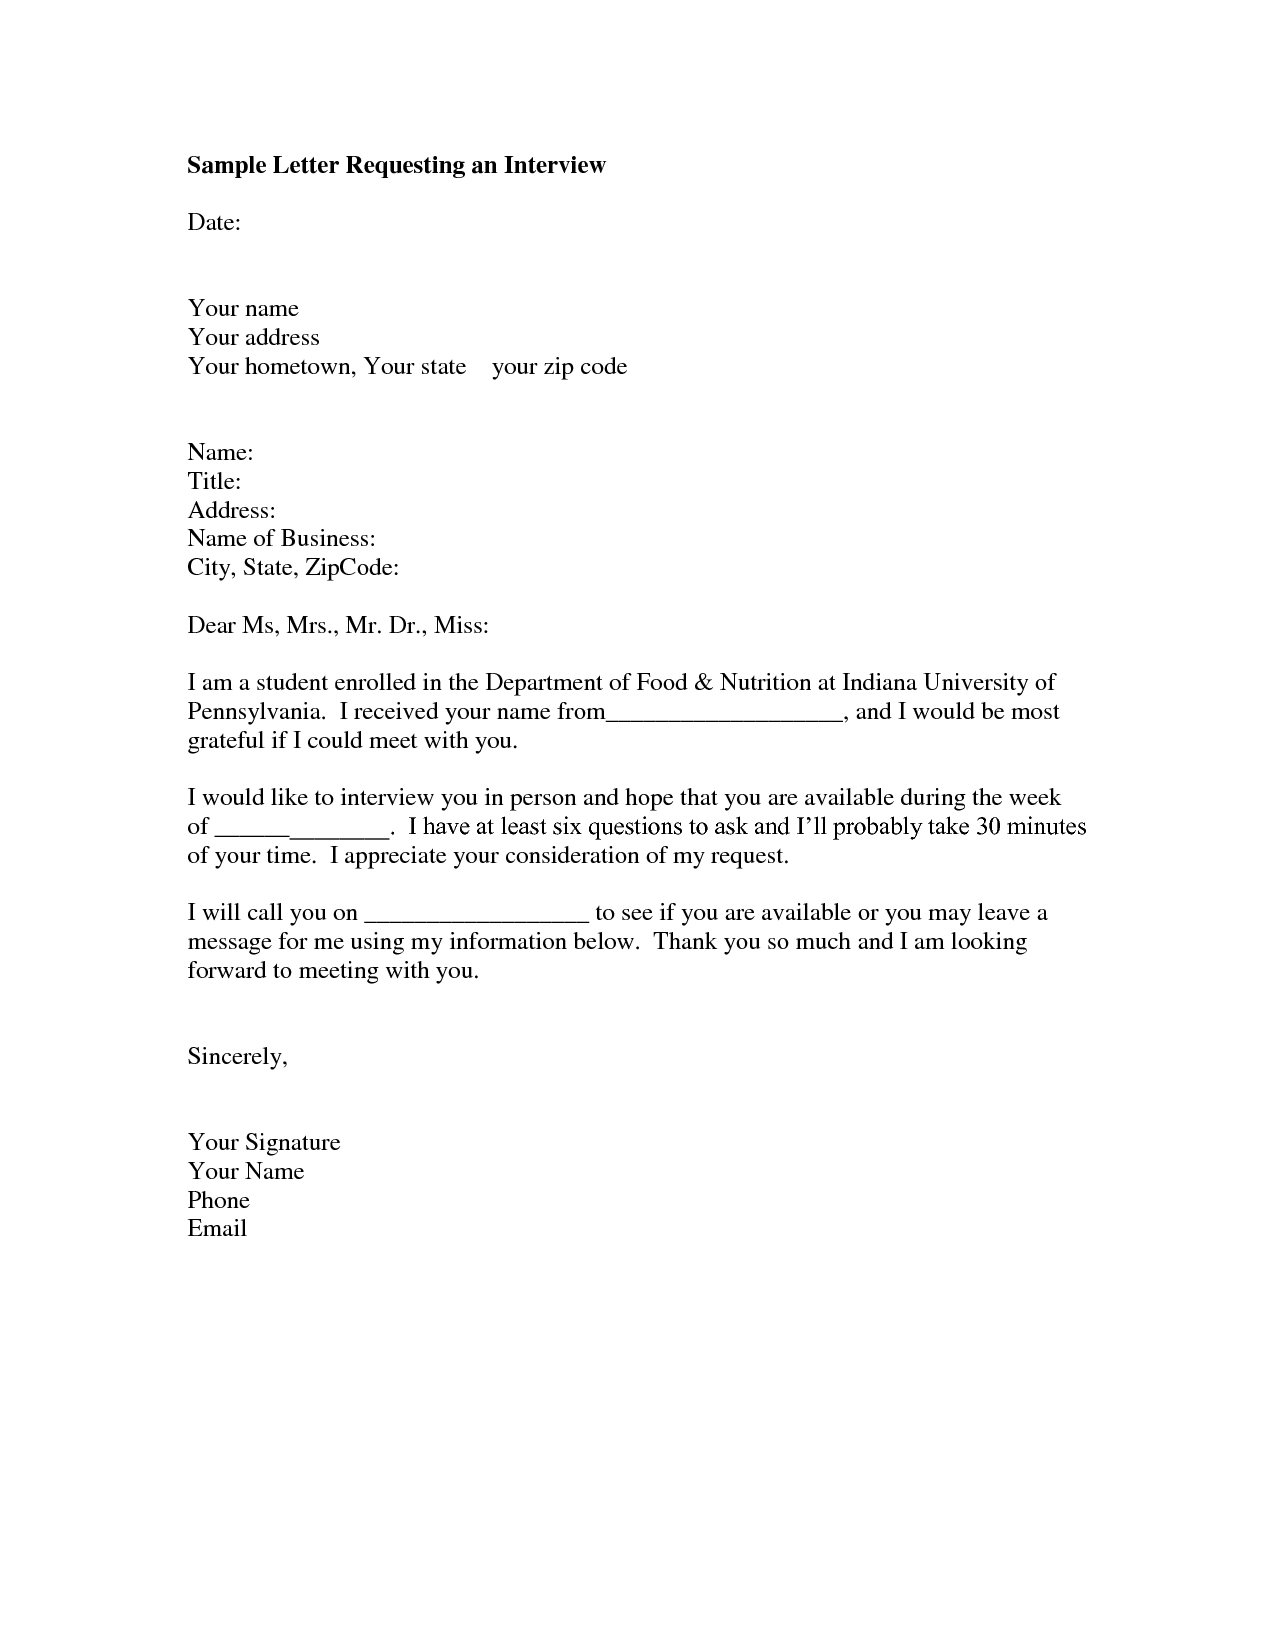 INTERVIEW REQUEST LETTER - sample format of a letter you can use to request an interview with a ...